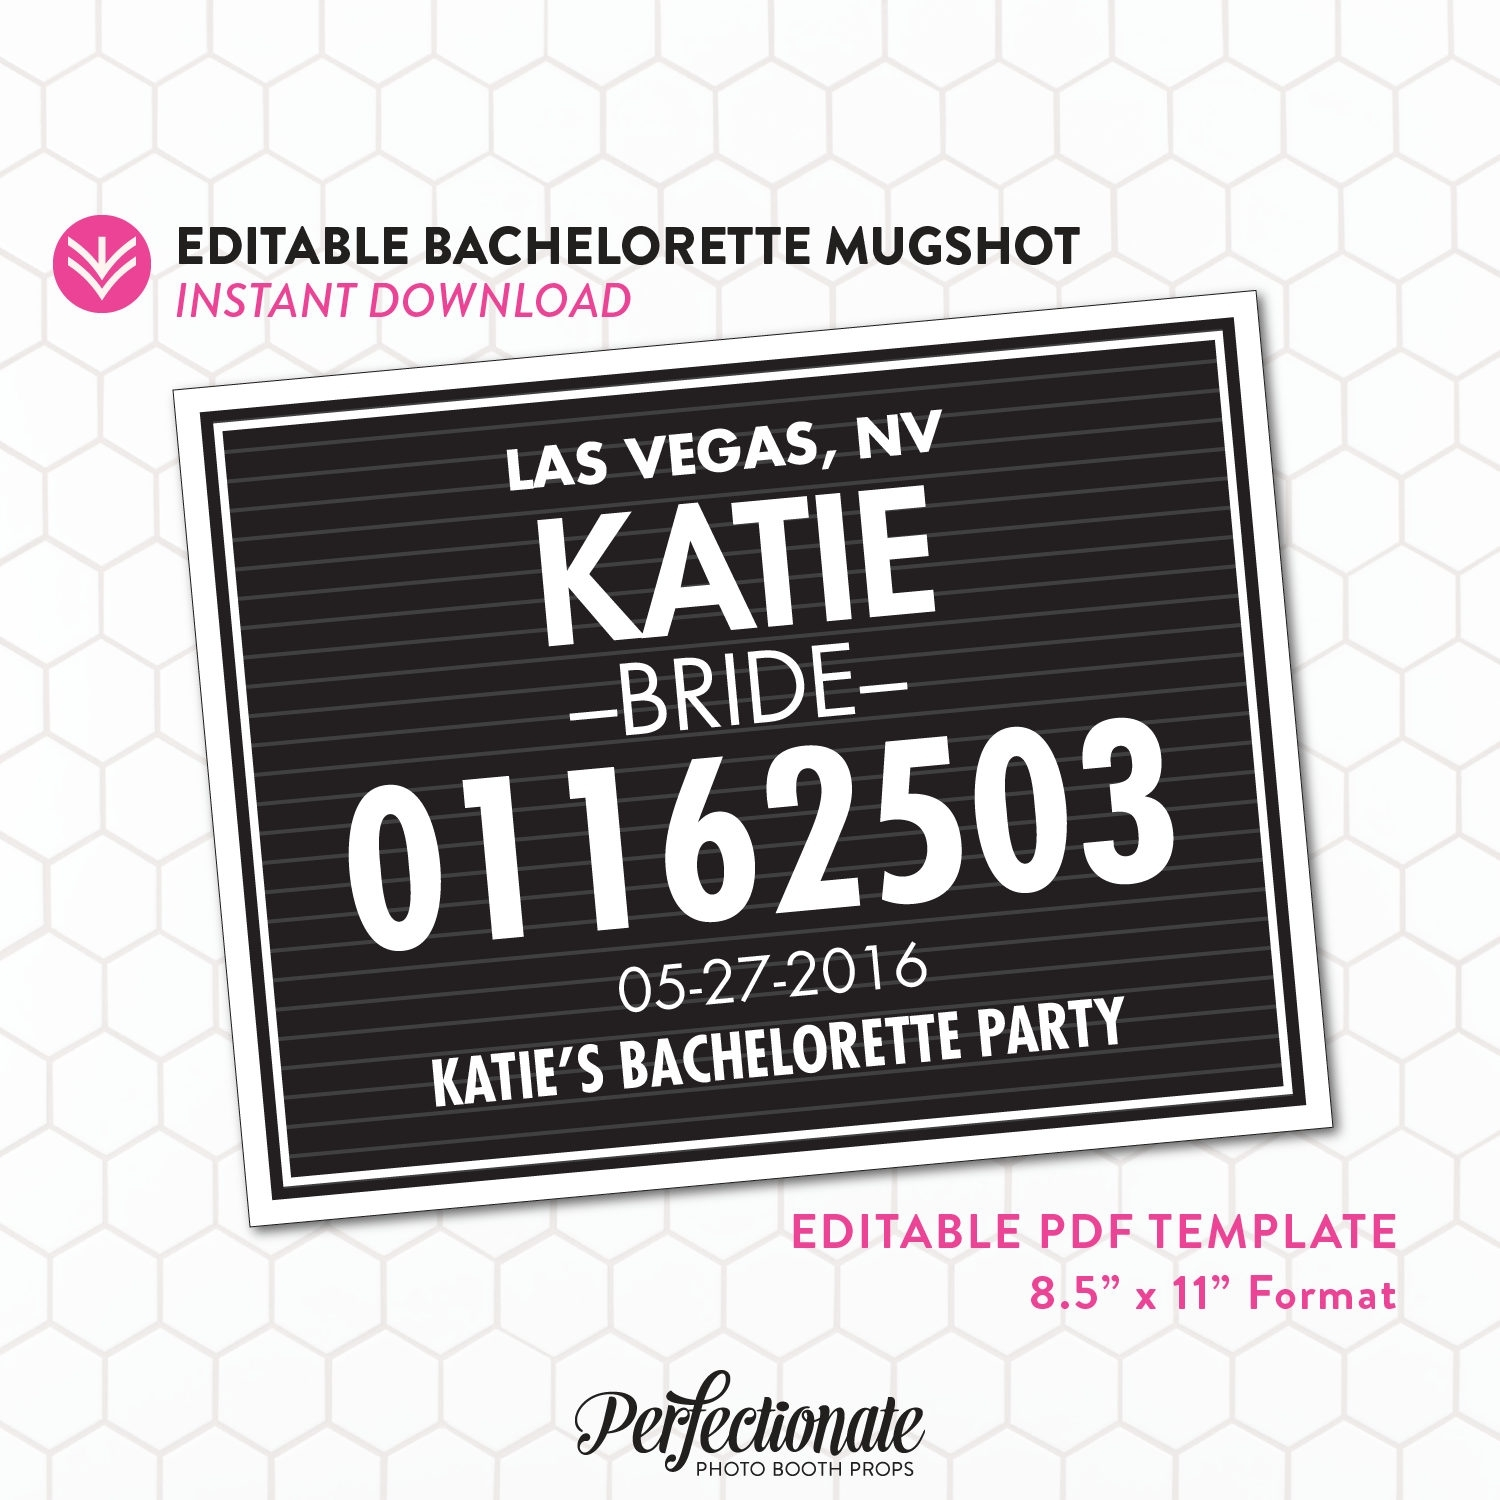 Diy Bachelorette Mugshot Sign Template Unlimited Personal | Etsy in Bachelorett Fill In Blank Templets